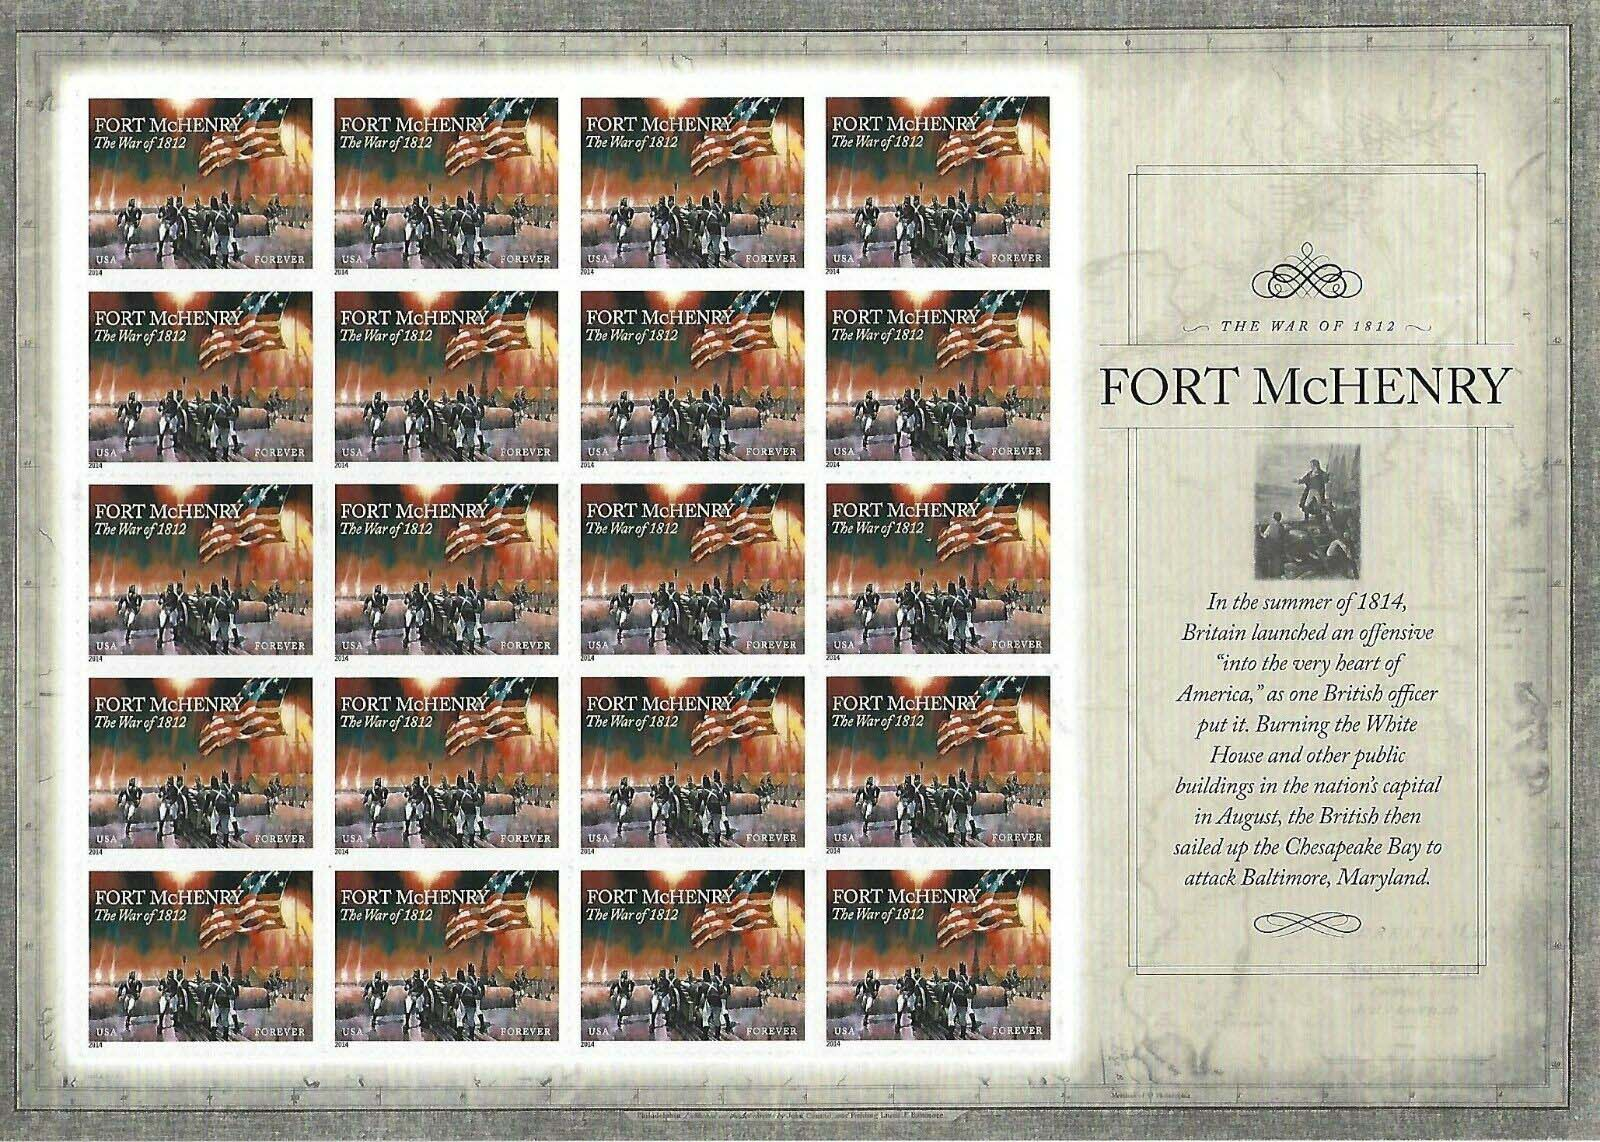 Scott #4921, Forever sheet of 20, Bombardment of Fort McHenry